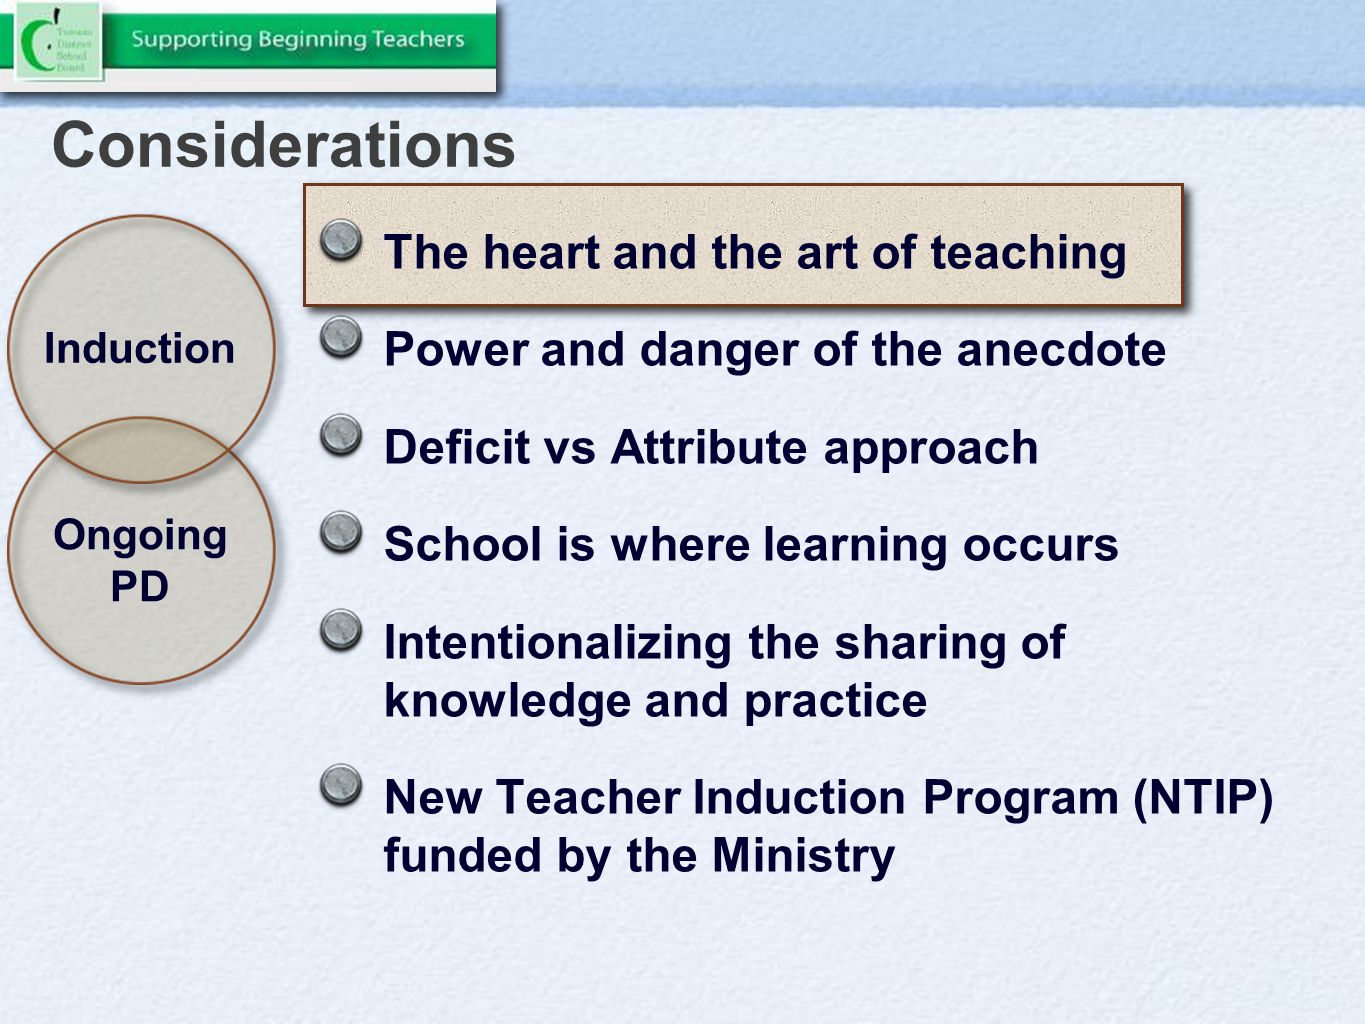 Considerations The heart and the art of teaching Power and danger of the anecdote Deficit vs Attribute approach School is where learning occurs Intentionalizing the sharing of knowledge and practice New Teacher Induction Program (NTIP) funded by the Ministry Induction Ongoing PD